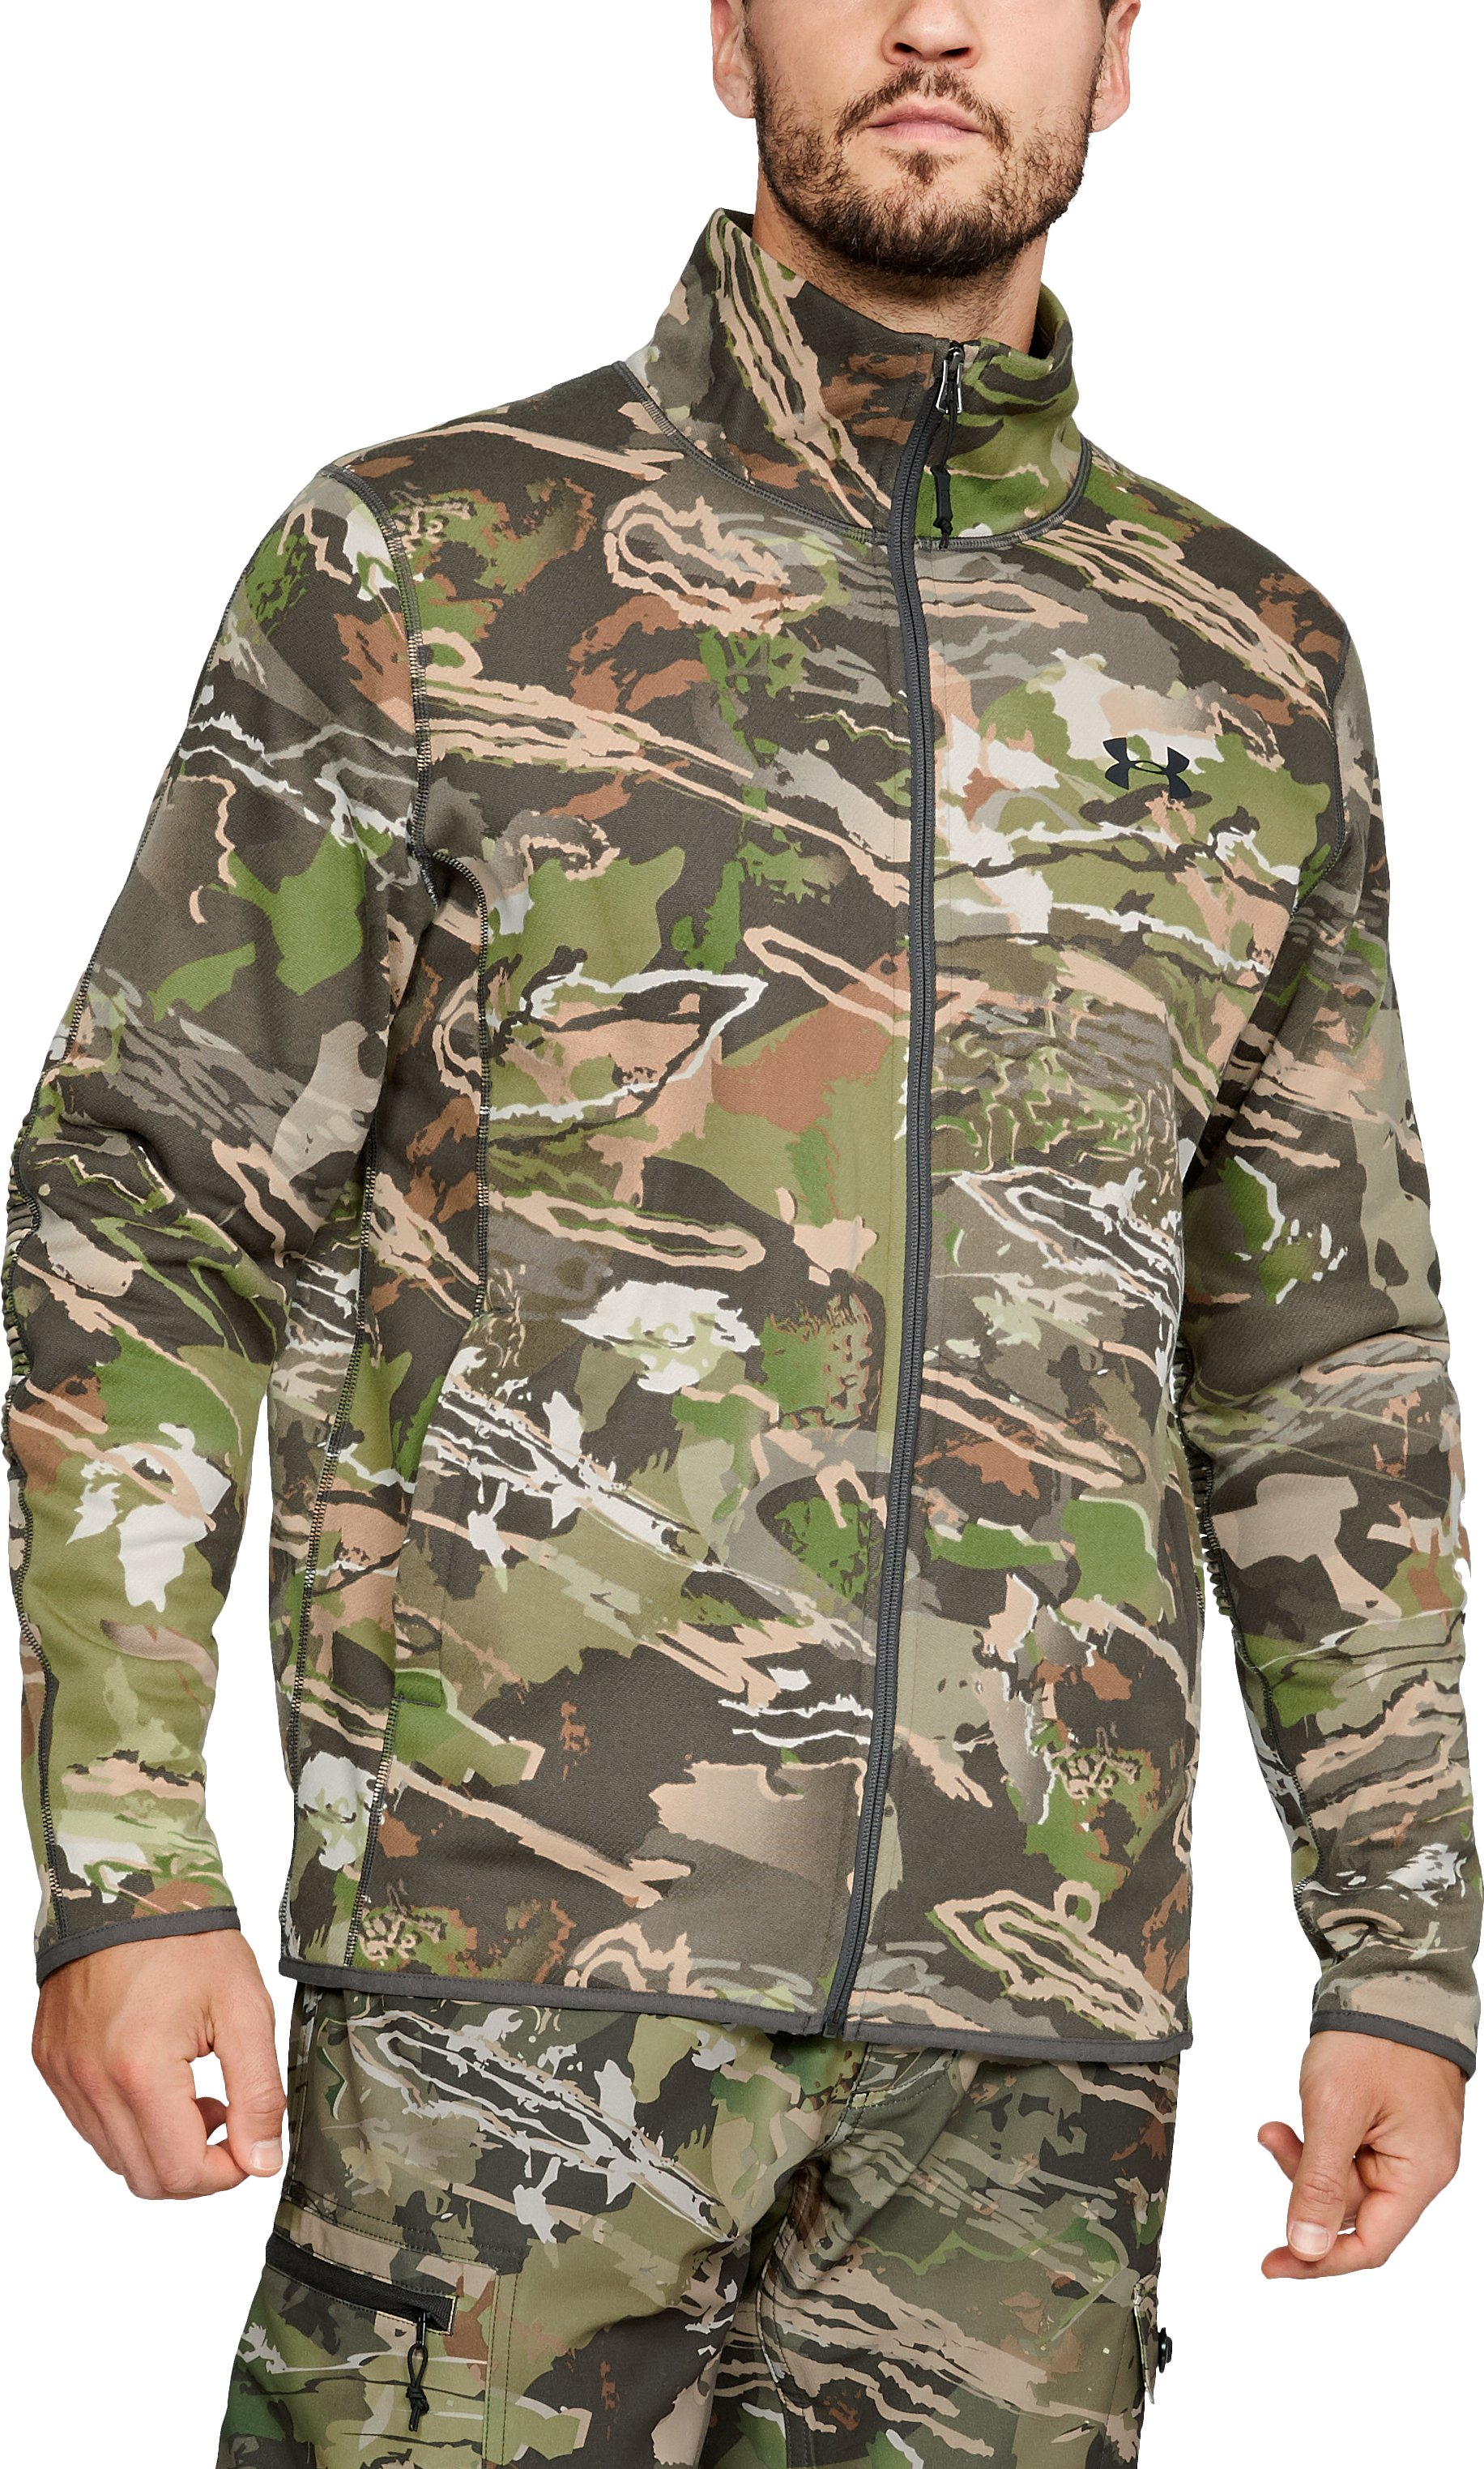 Men's UA Rut Fleece Full Zip Jacket, UA Forest Camo